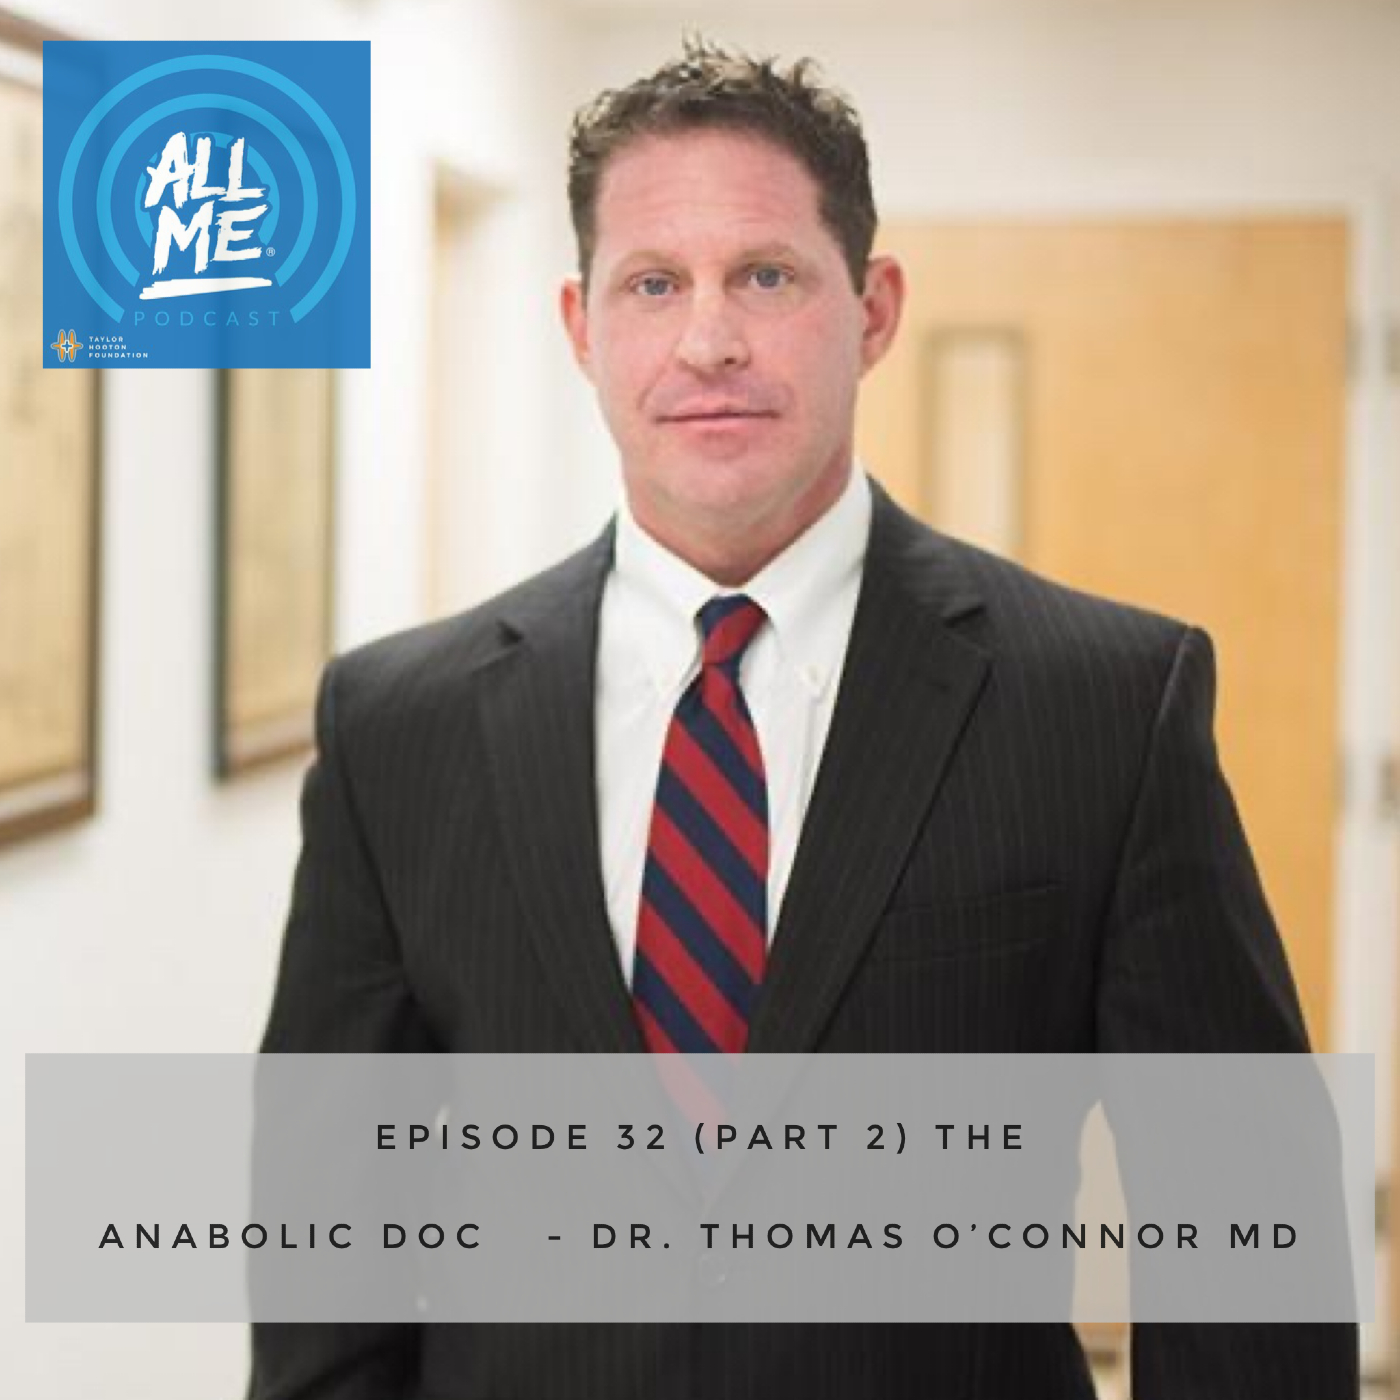 Episode 32: The Anabolic Doc - Dr. Thomas O'Connor (Part 2)